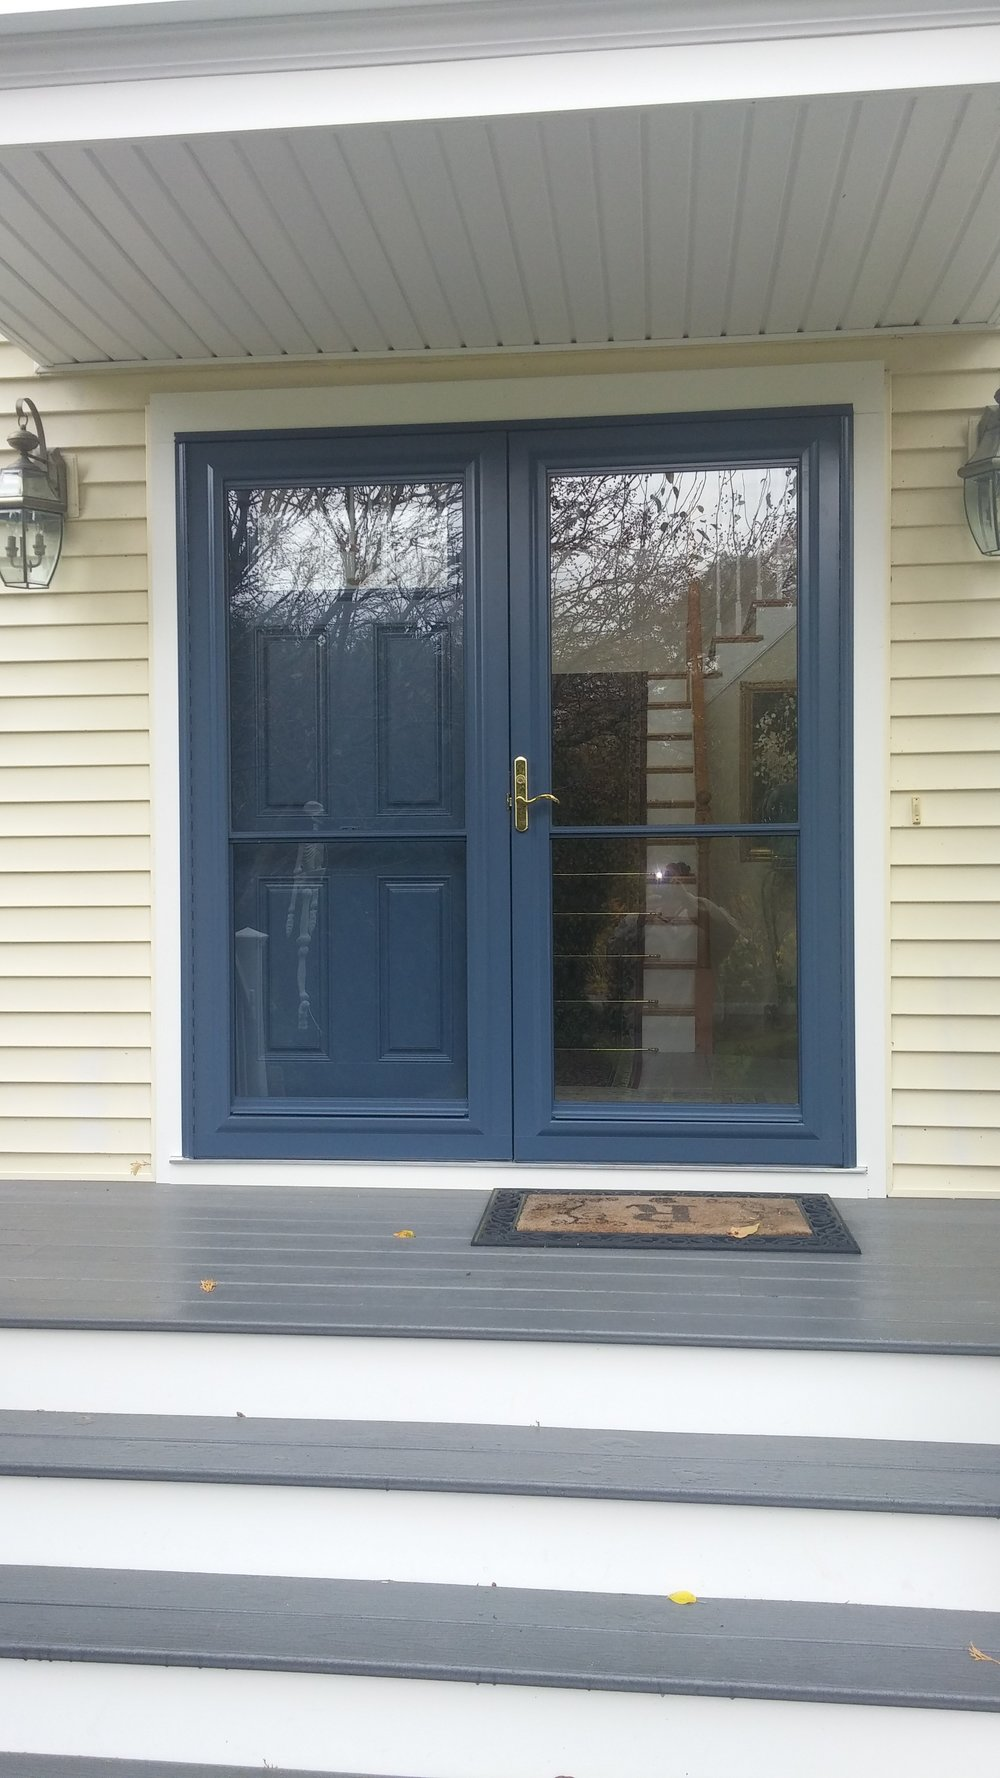 Window and Door Replacements - Framingham MA